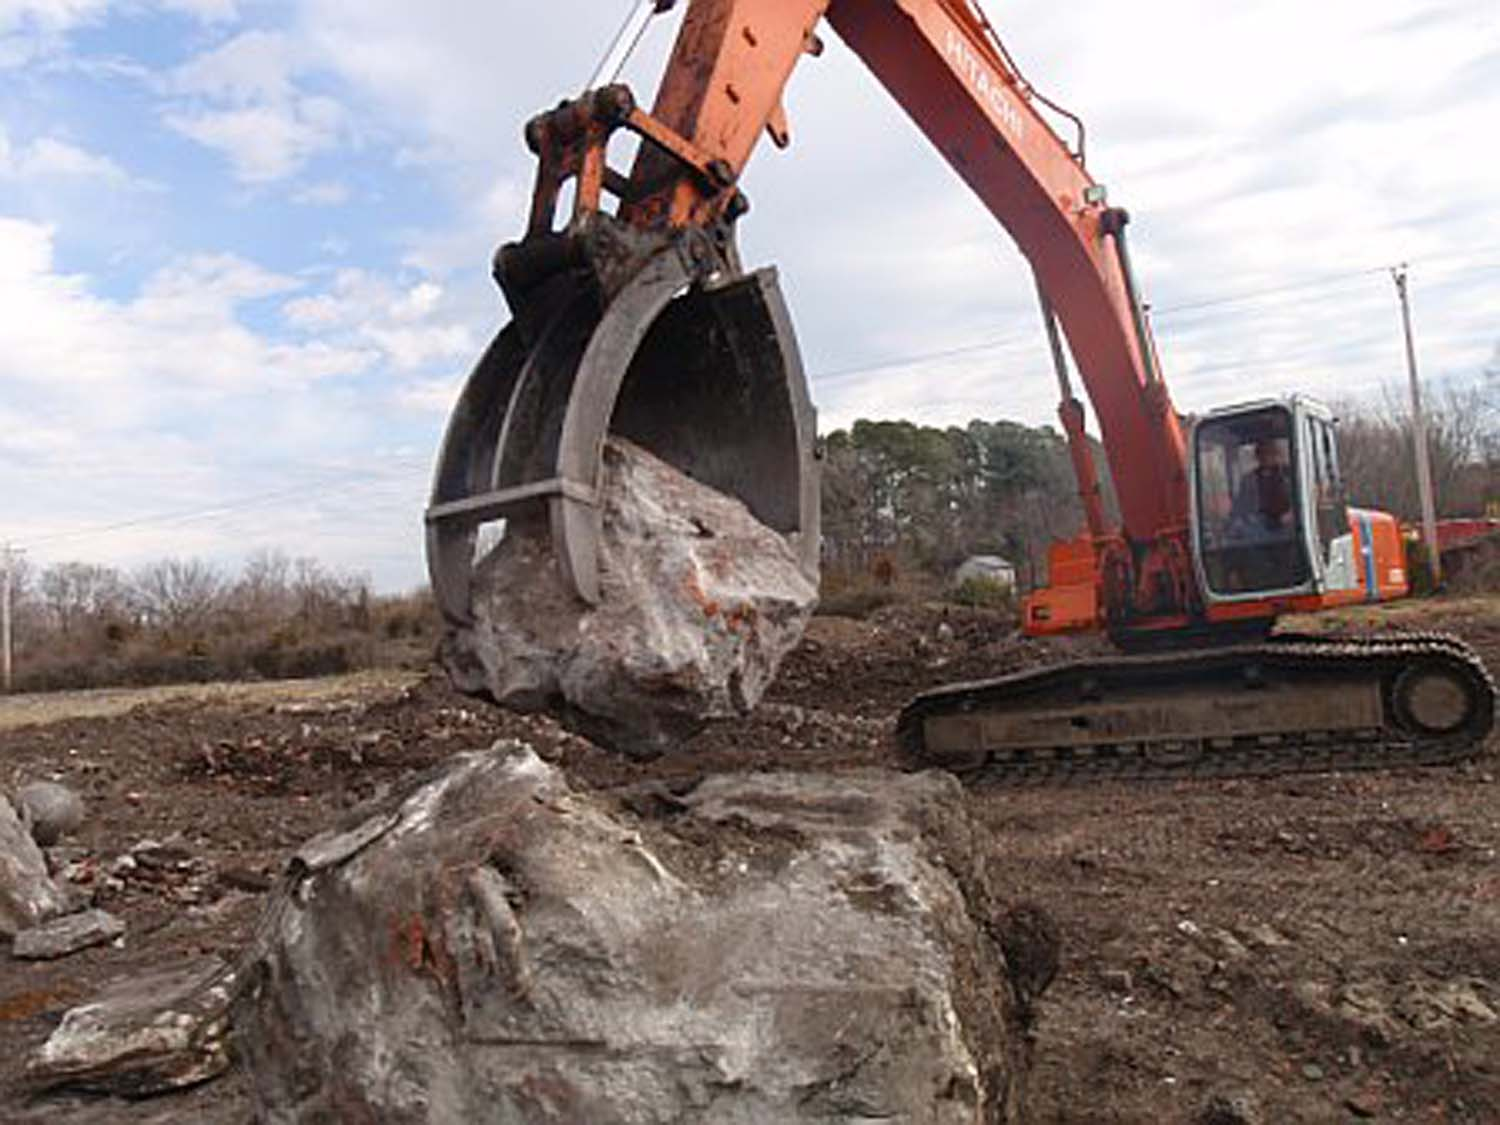 Demolition Grapples Manufacturers In North America